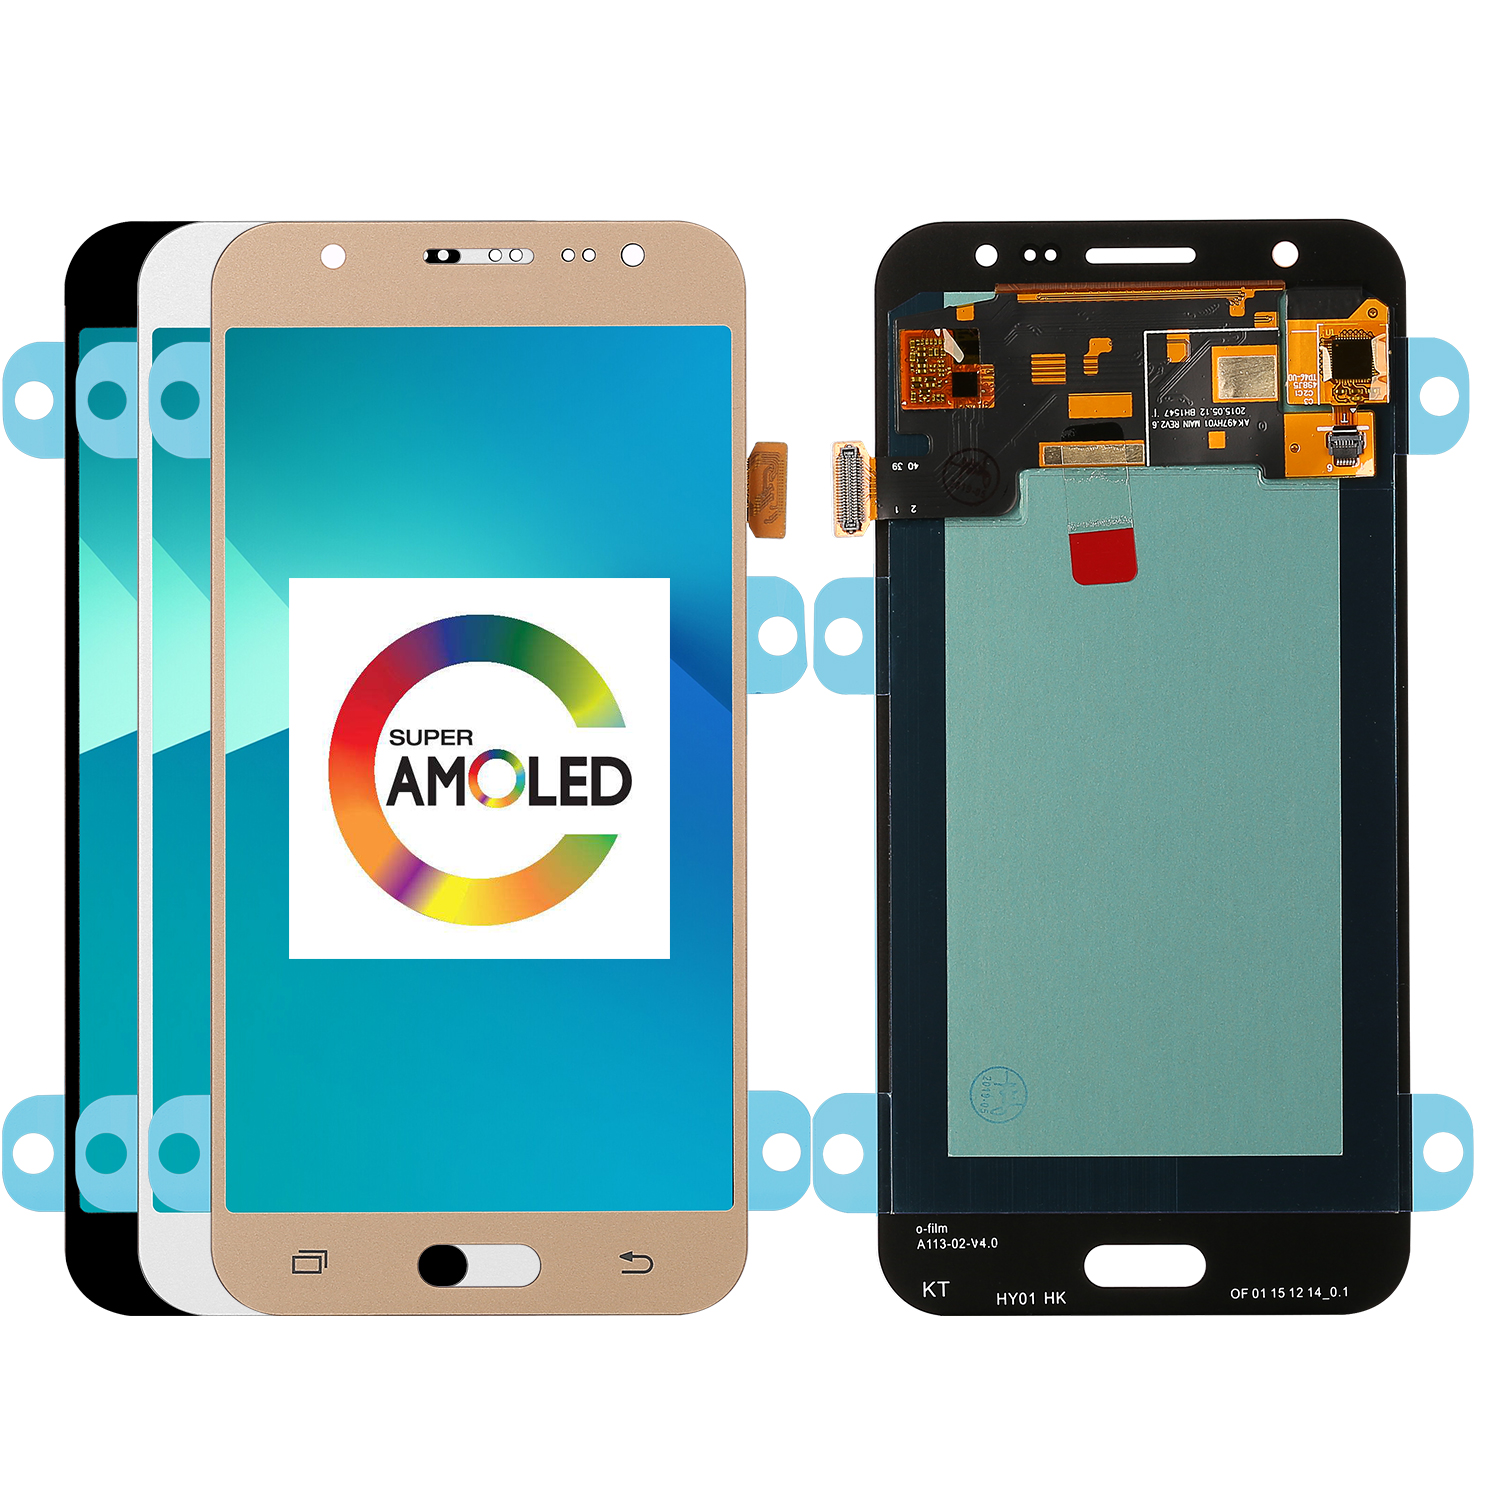 5.0 Super AMOLED LCD For Samsung Galaxy J5 2015 J500 J500F J500FN J500H J500M LCD Display  and Touch Screen Digitizer Assembly5.0 Super AMOLED LCD For Samsung Galaxy J5 2015 J500 J500F J500FN J500H J500M LCD Display  and Touch Screen Digitizer Assembly